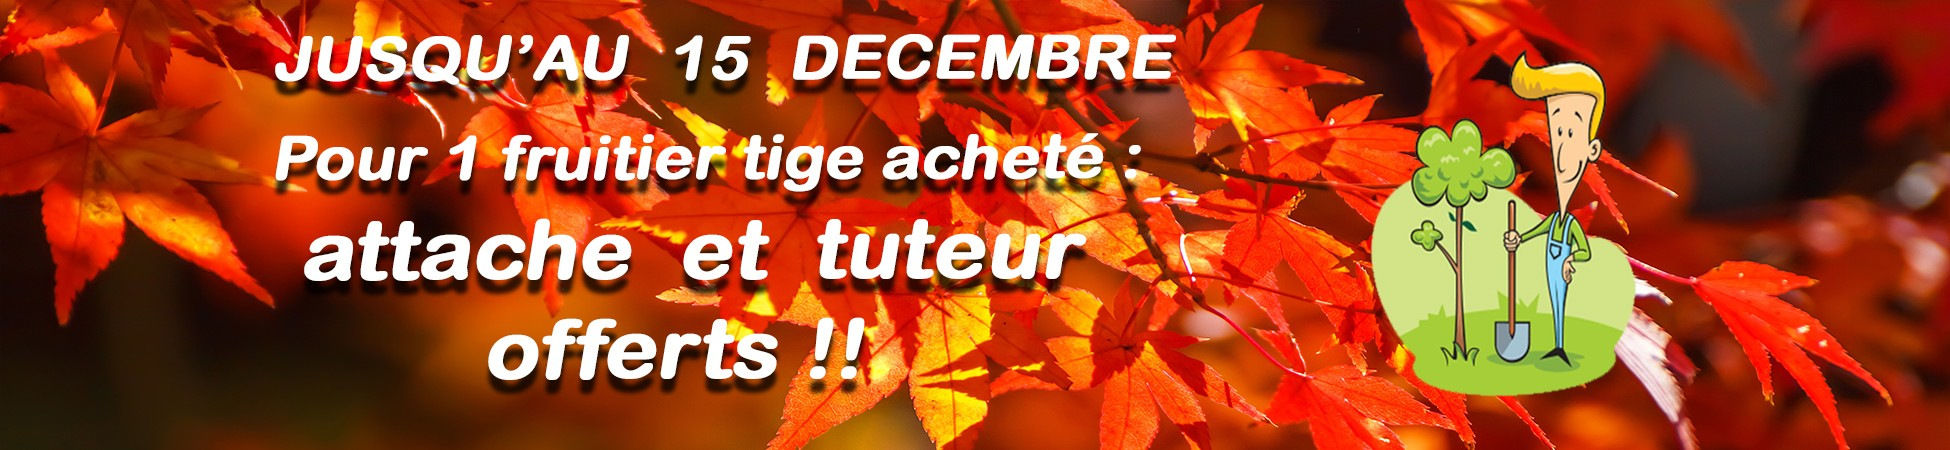 Offre fruitiers automne 2018